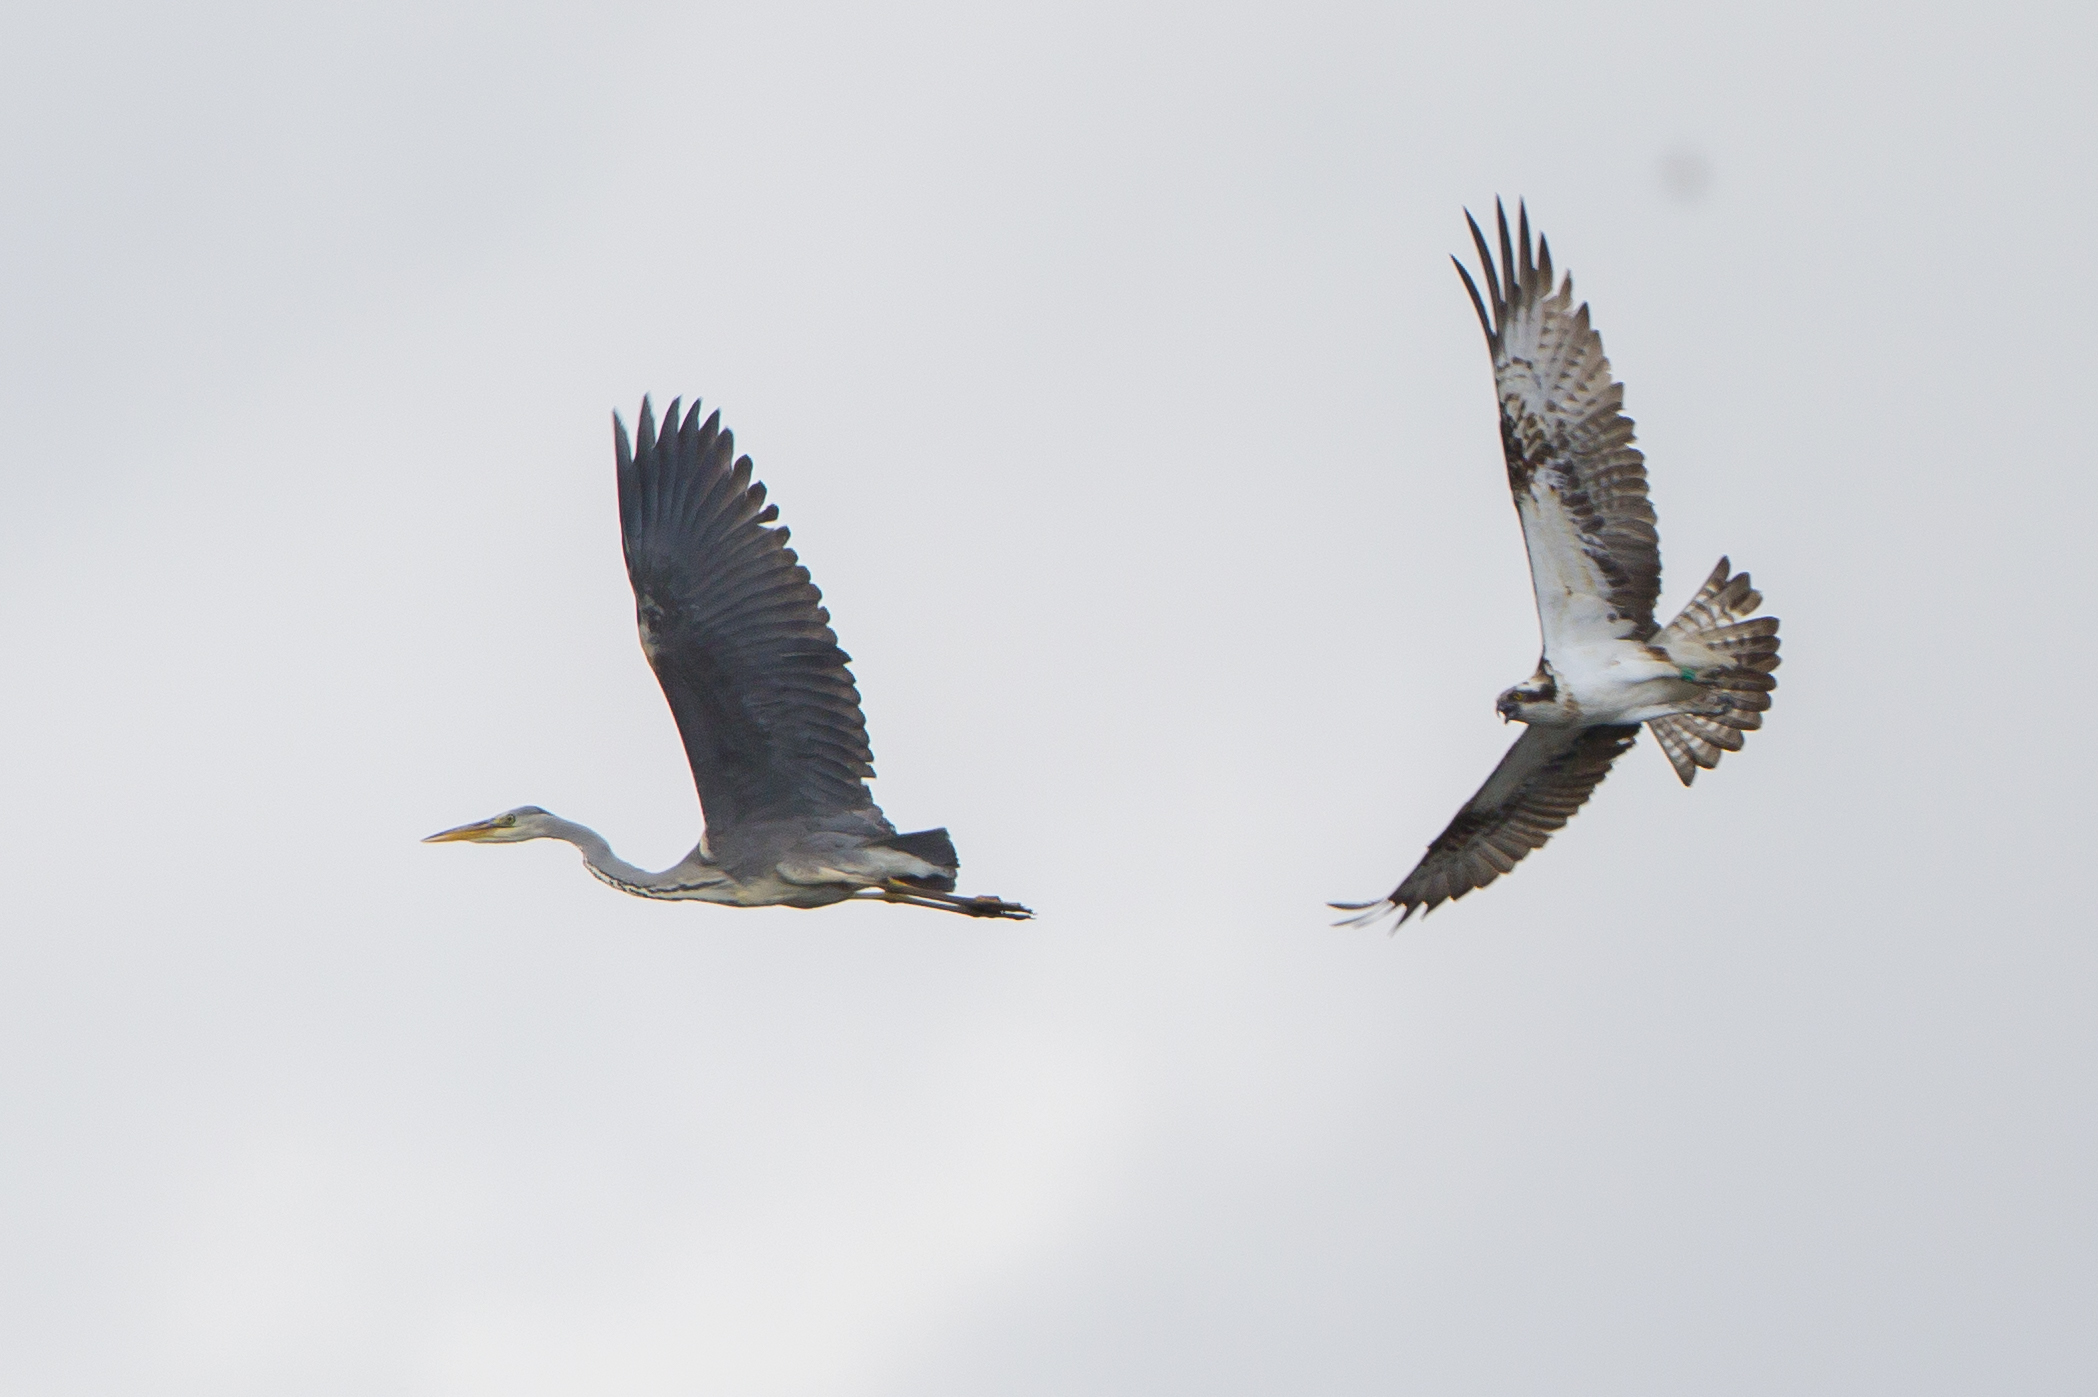 The male osprey sees off the Balgavies heron